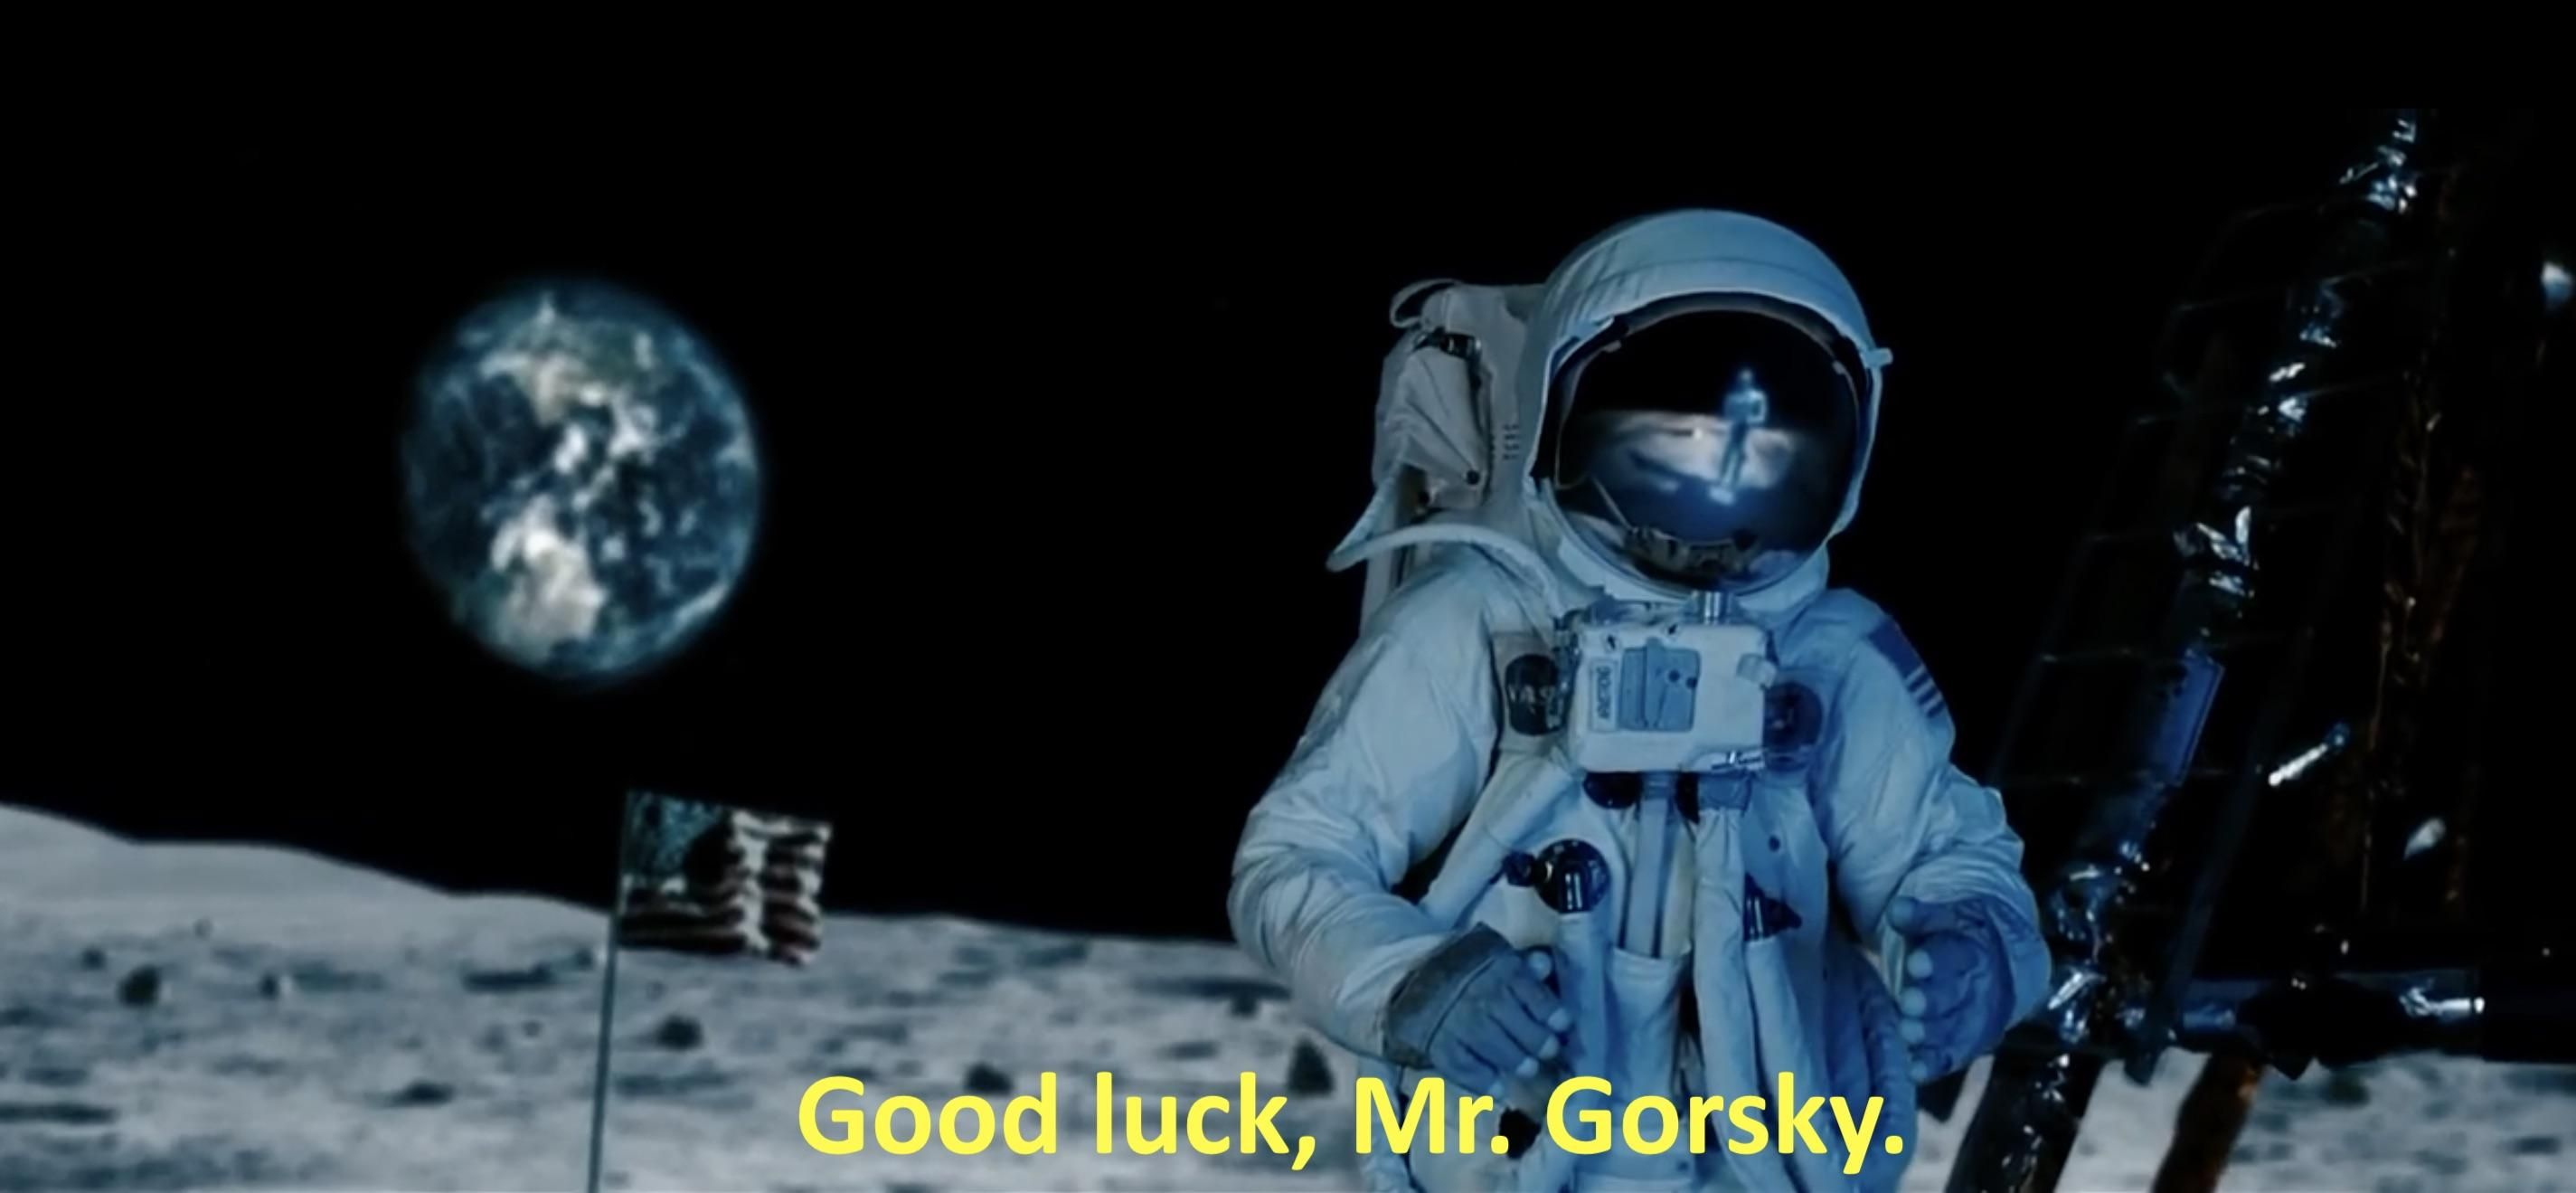 neil armstrong quote good luck mr gorsky